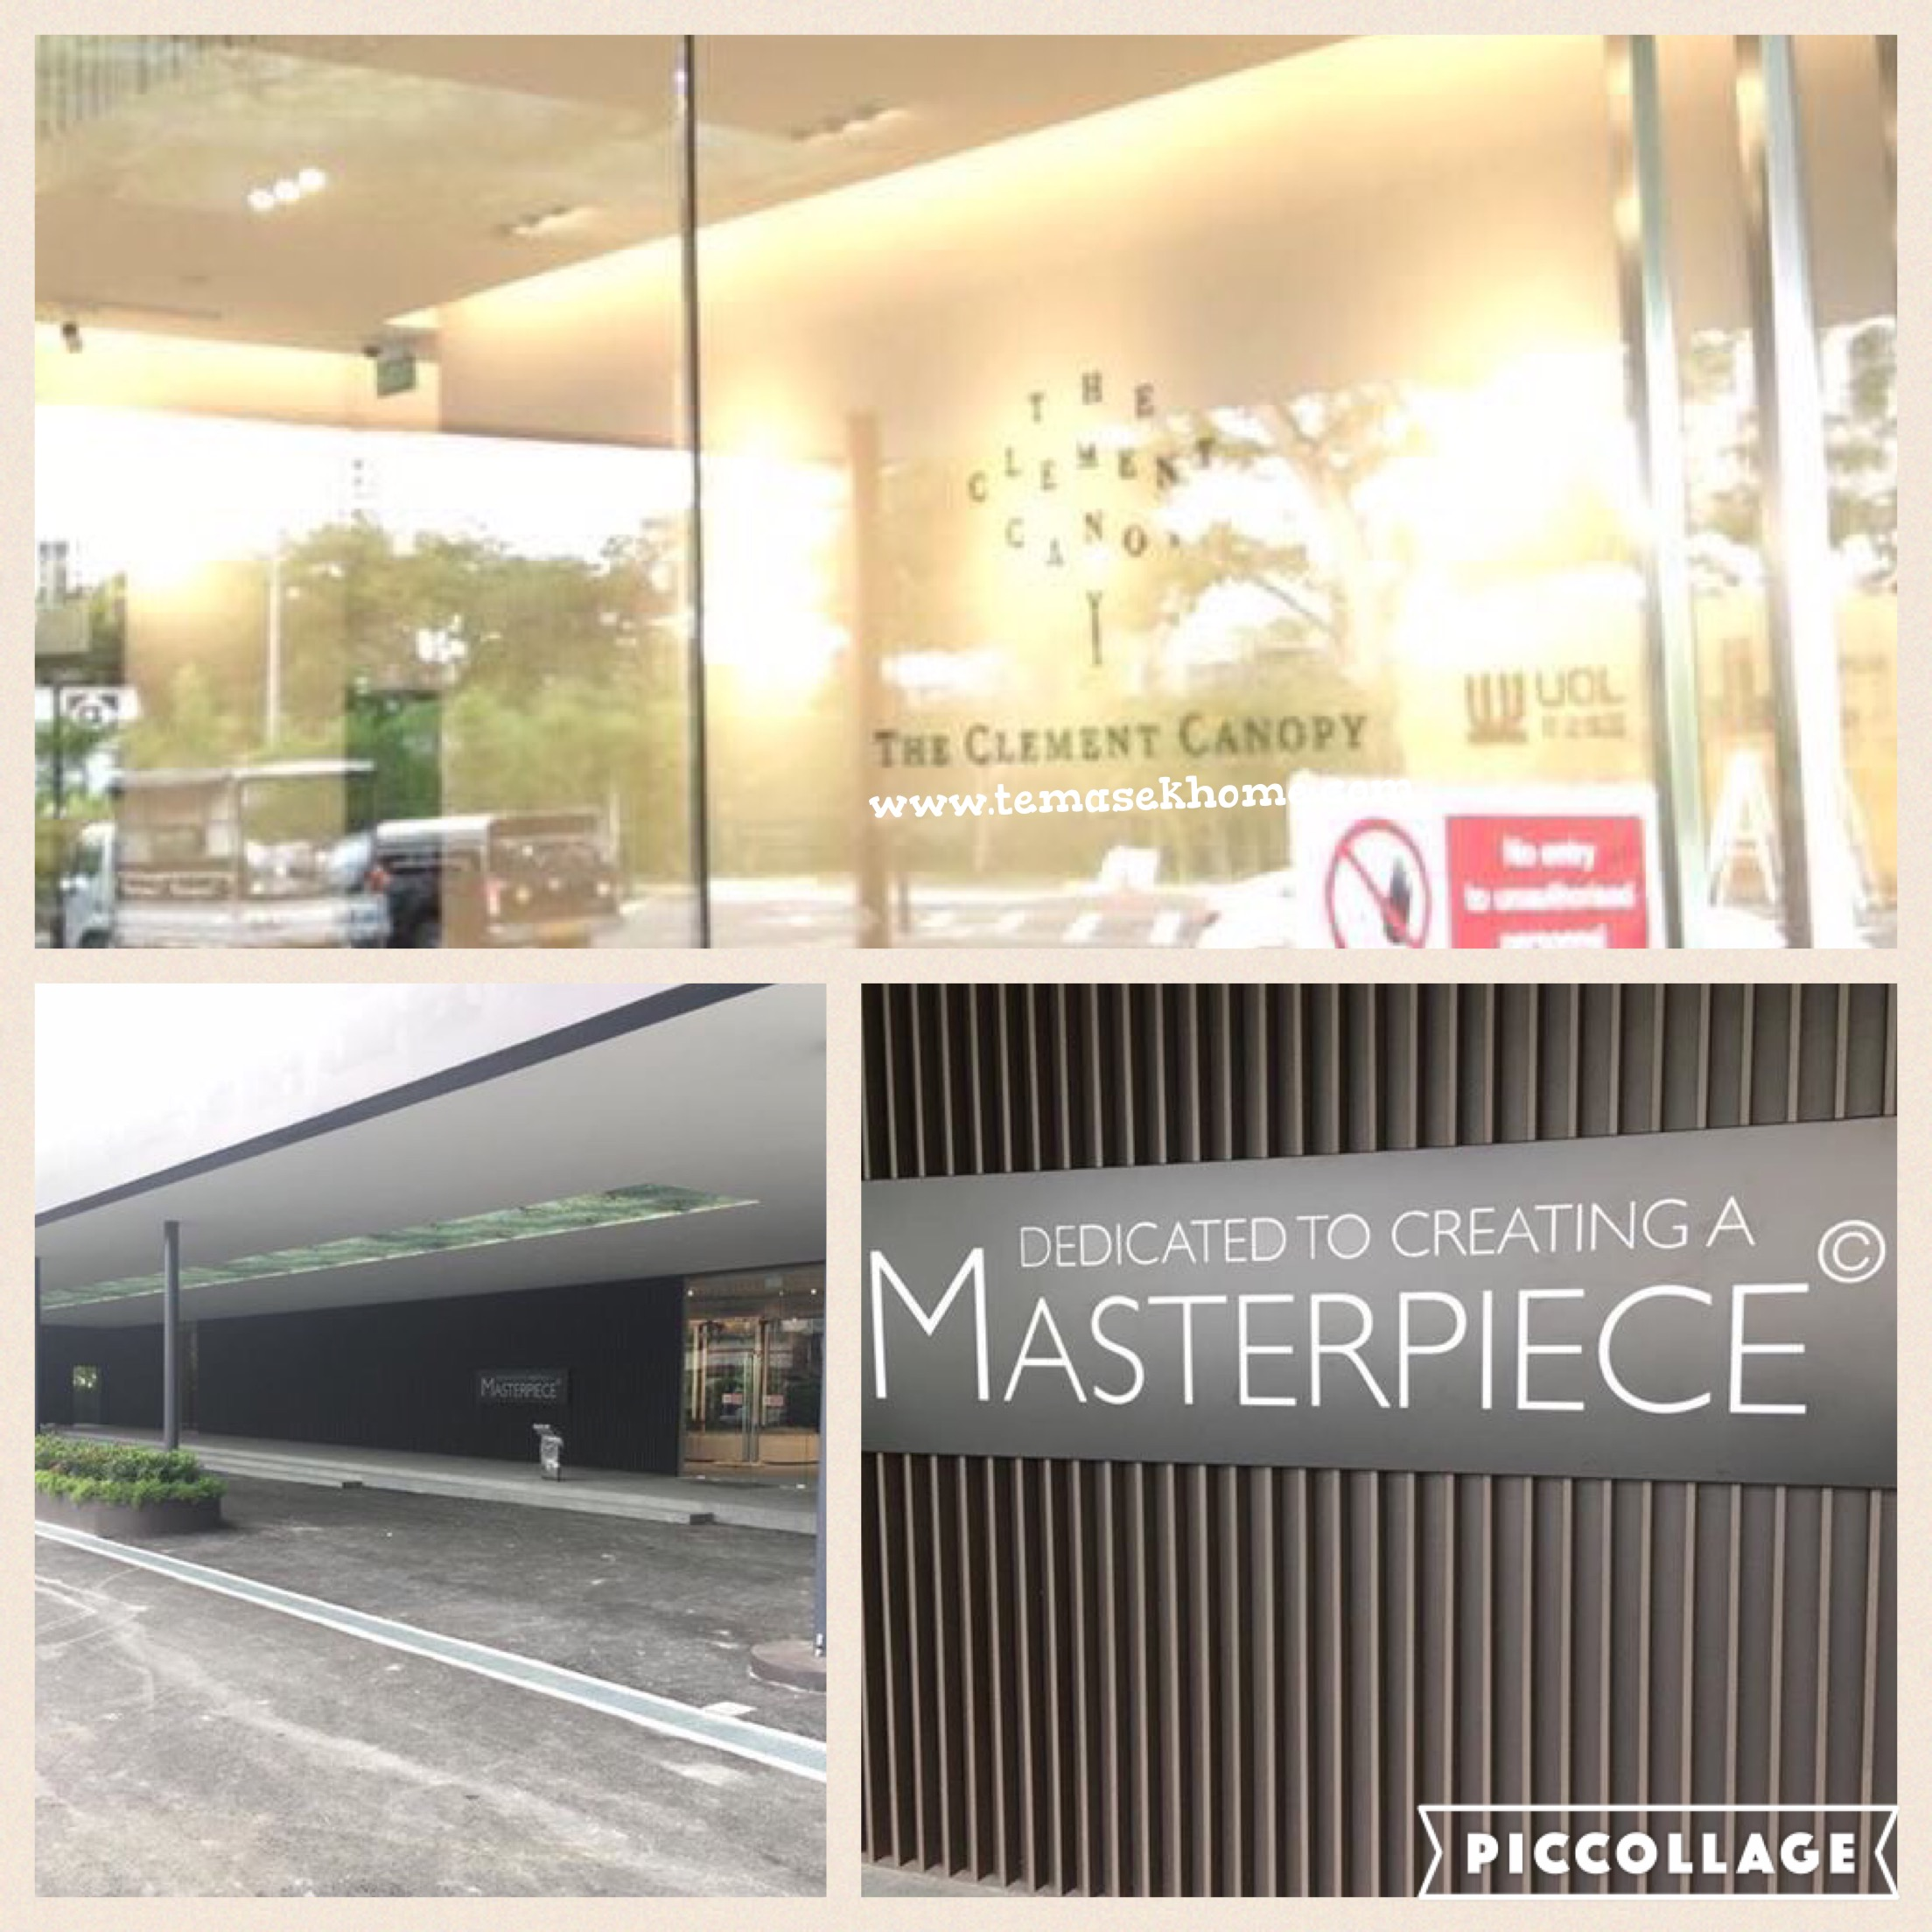 Clement Canopy, Clement Canopy Condominium, Clement Canopy in Clementi